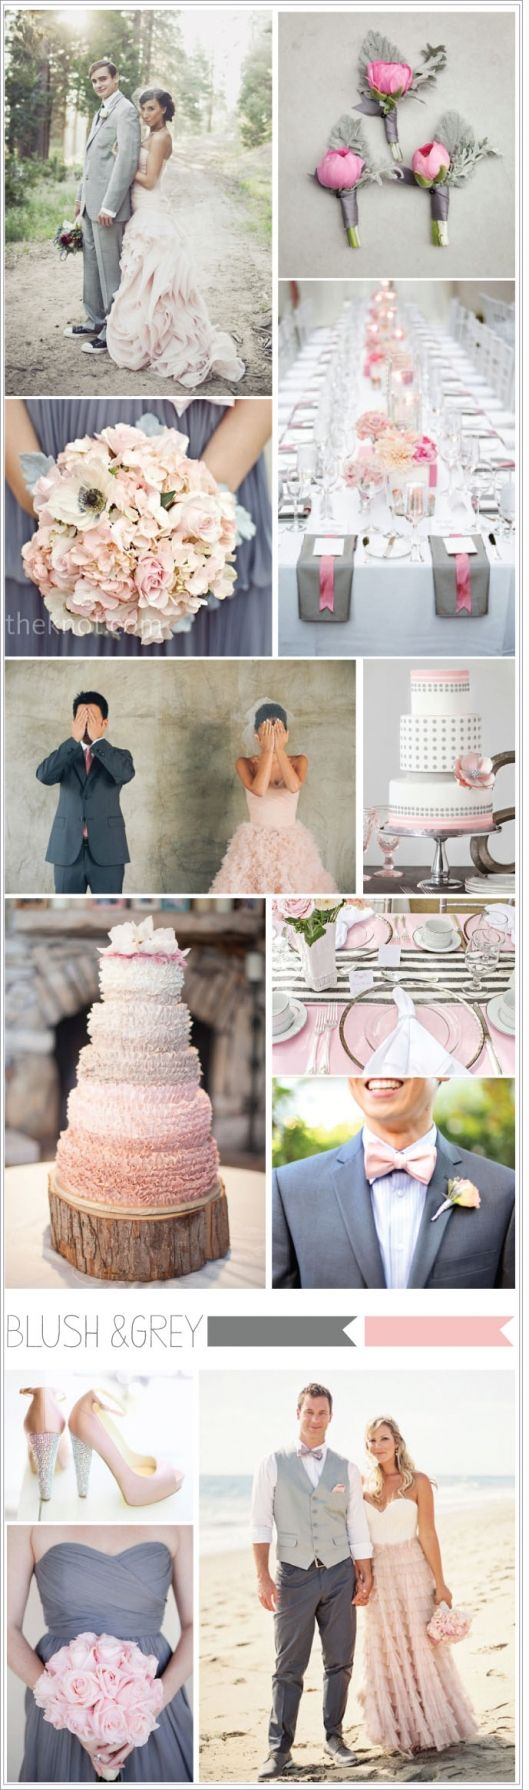 Love this blush and grey color combo.